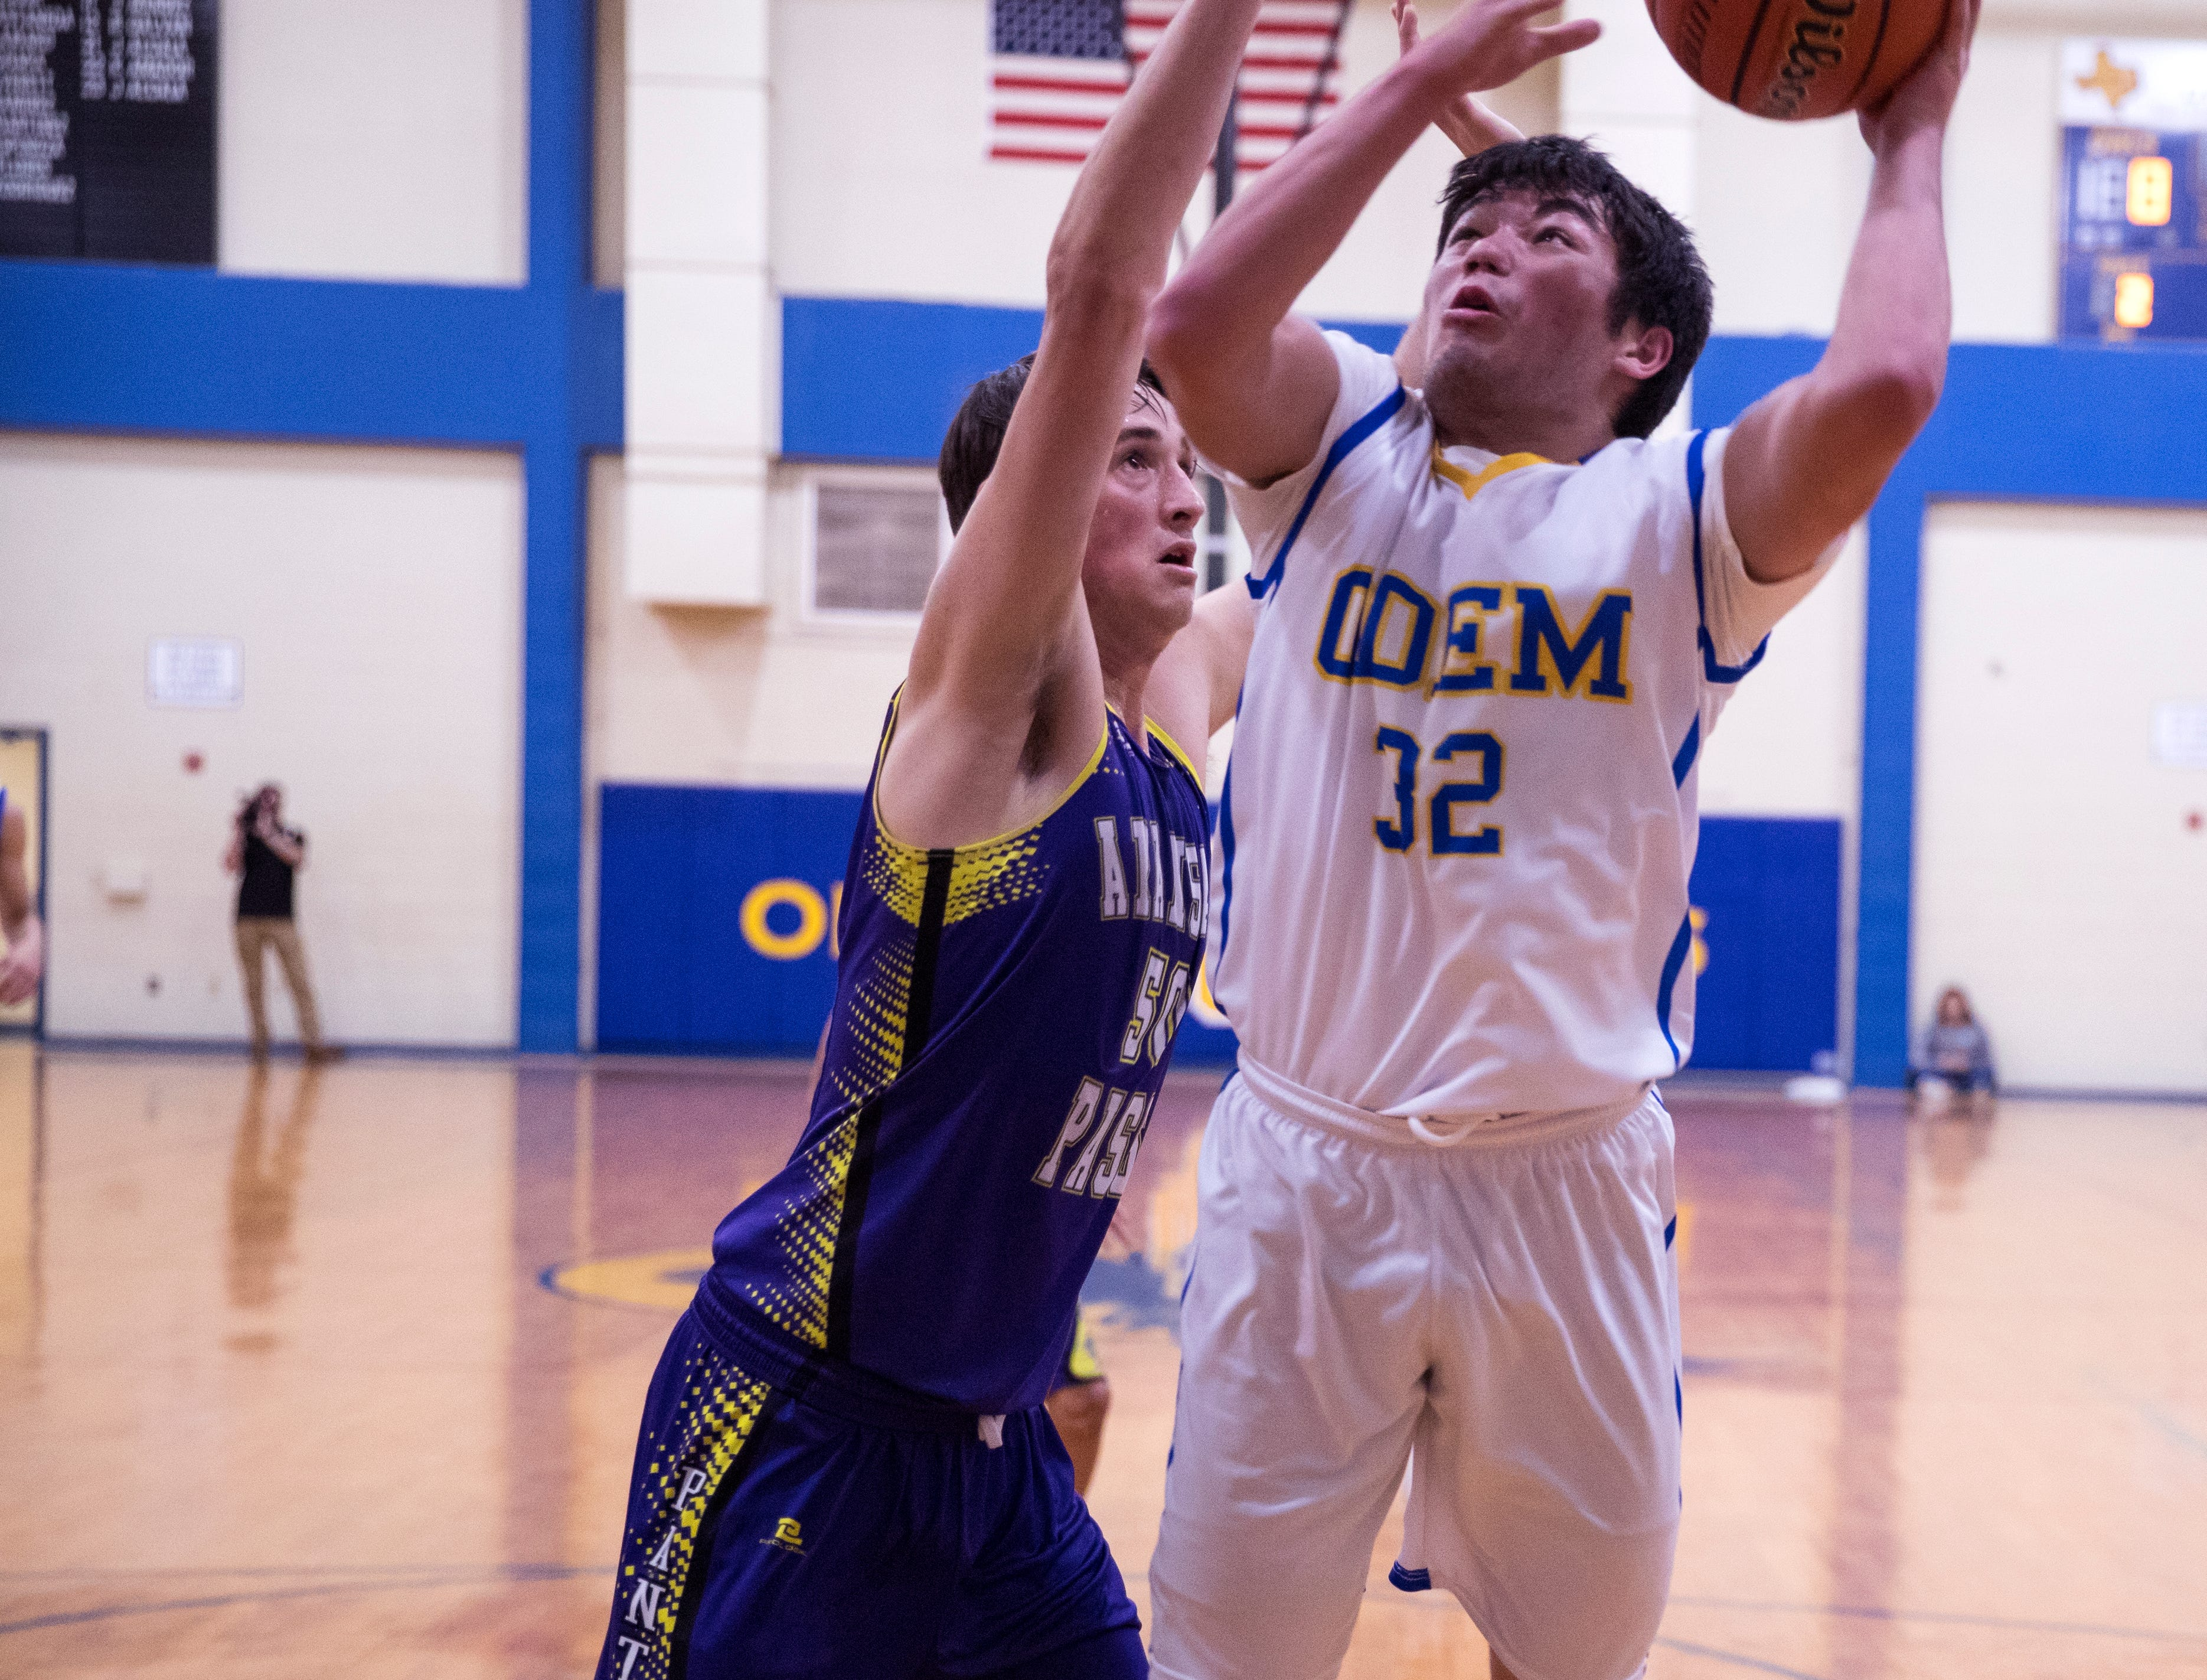 Odem's Josh Rodriguez goes up for a basket as Aransas Pass' Jared Gentry waits for the rebound on Friday, January 18, 2019. Odem won 48-30.